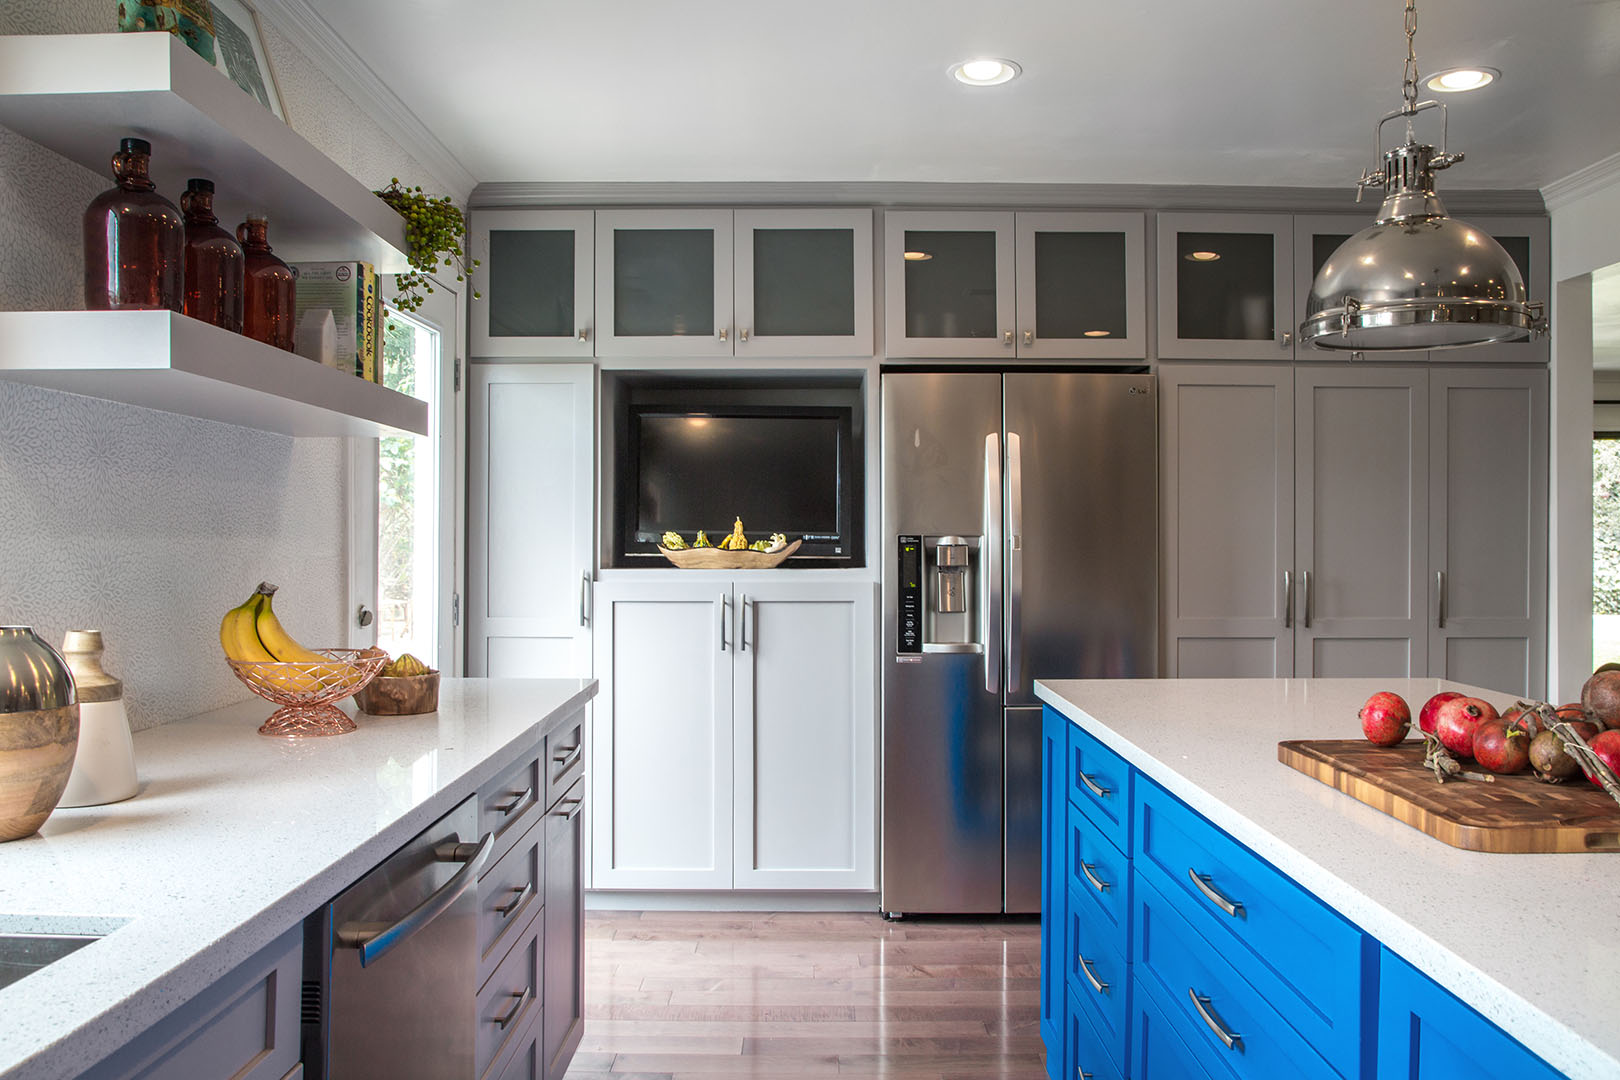 Kitchen designer in Oakland